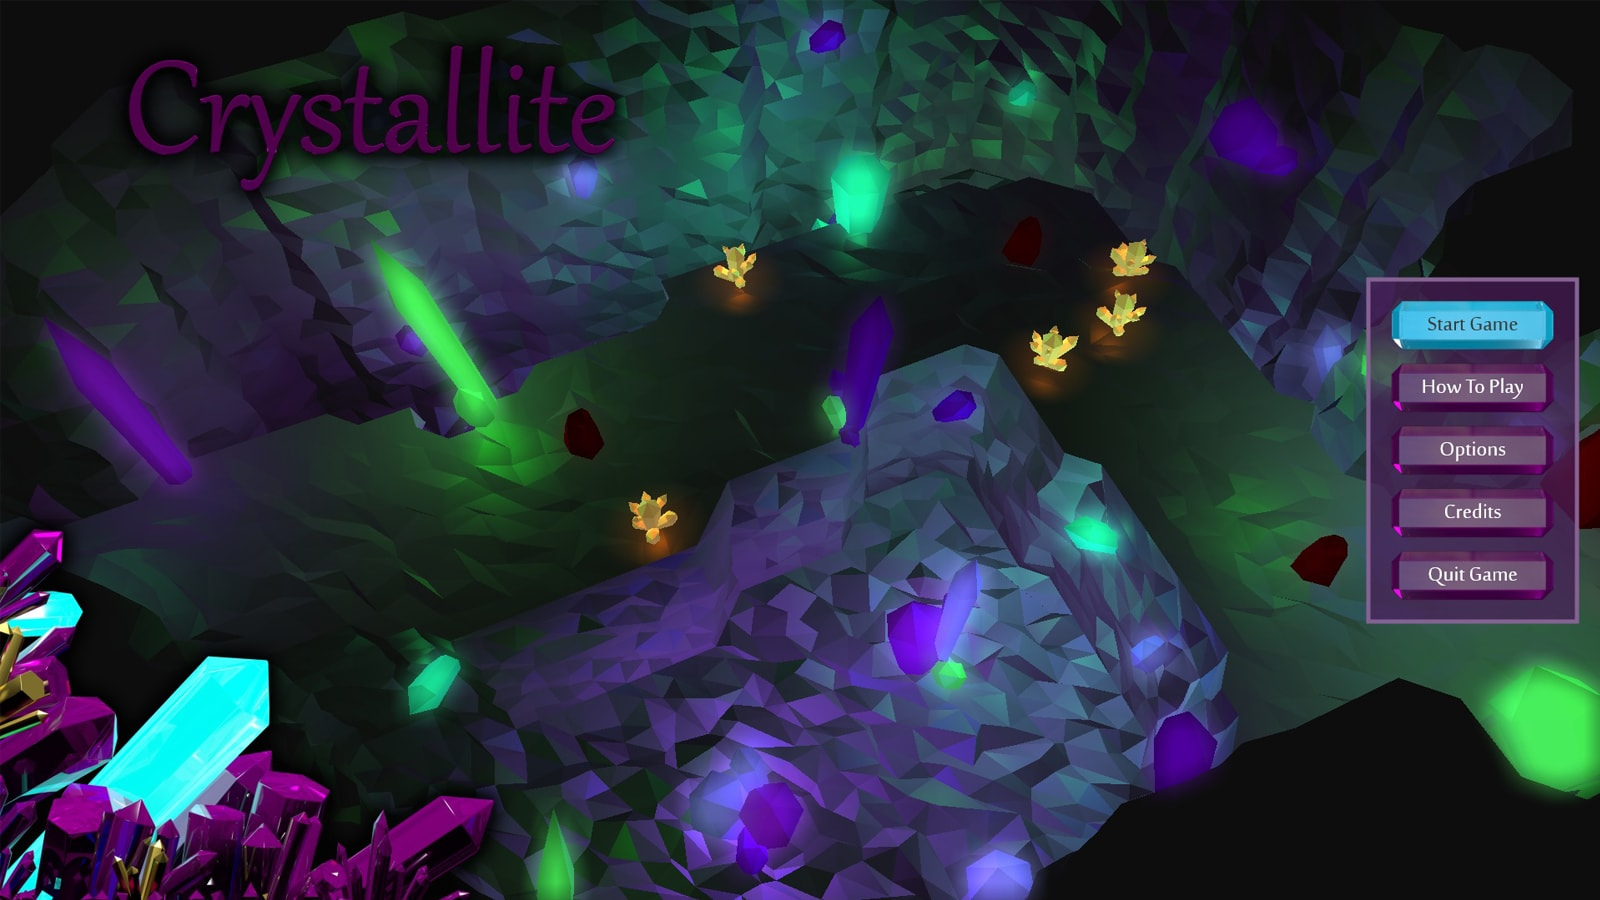 The game's menu screen, along with an overview of a crystal cavern.